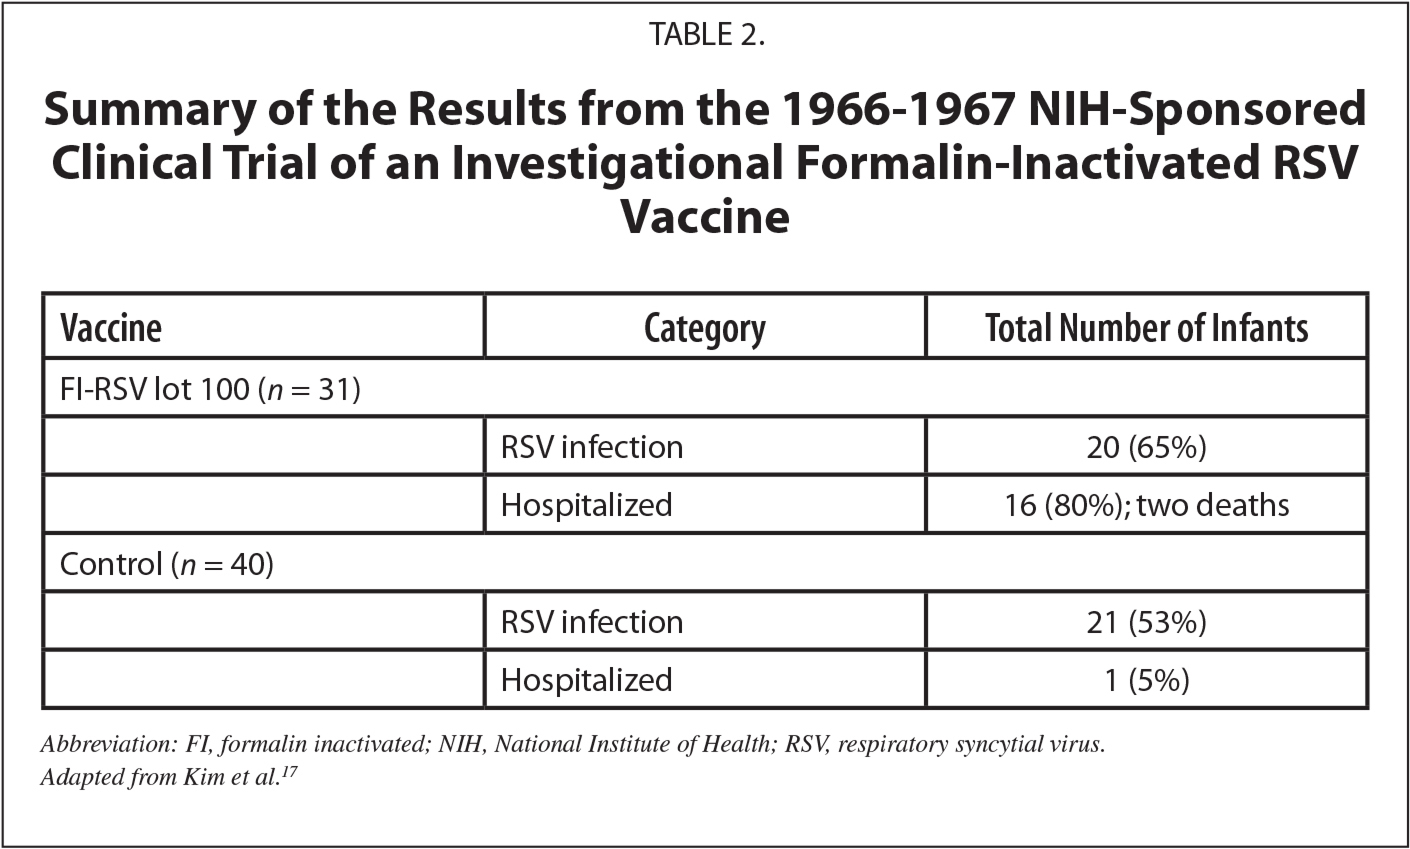 Summary of the Results from the 1966–1967 NIH-Sponsored Clinical Trial of an Investigational Formalin-Inactivated RSV Vaccine